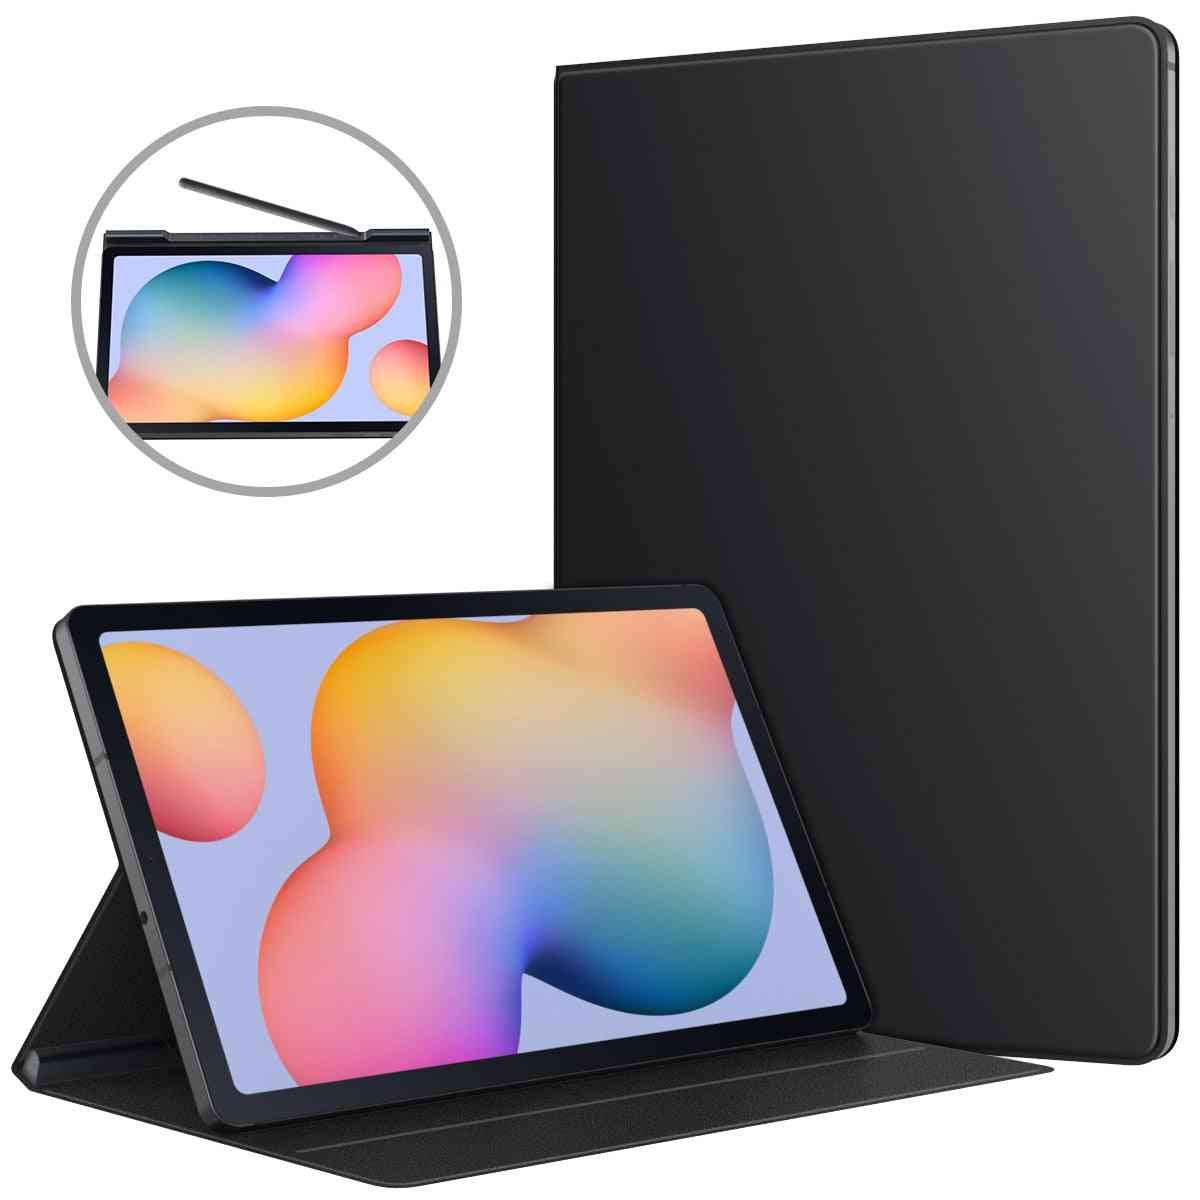 Tablet Case For Galaxy Tab S6 Lite, Ultra-slim Smart Folio Shell Cover Magnetic Absorption